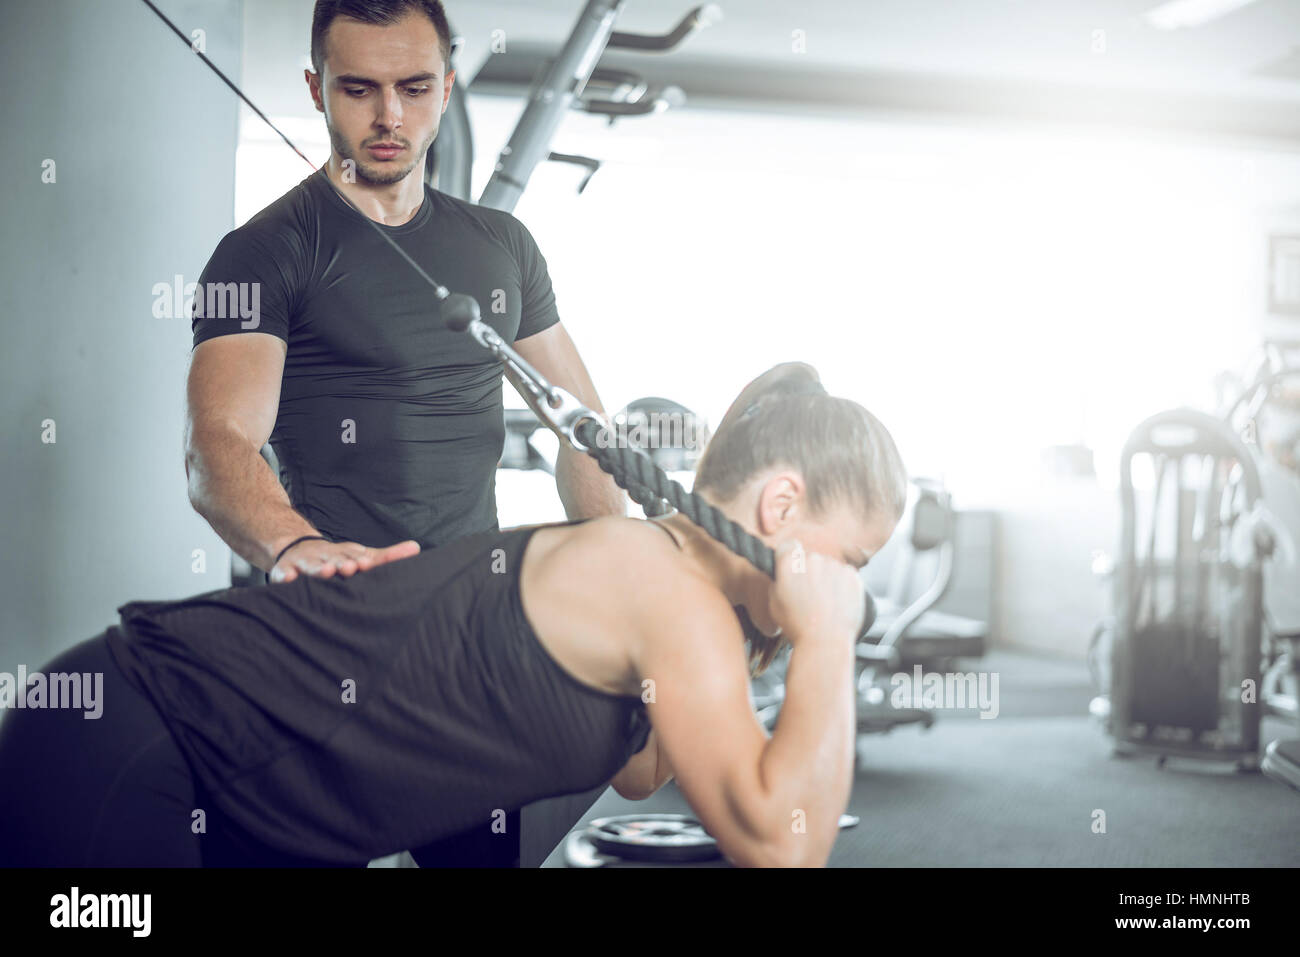 Young adult personal fitness trainer supporting his client while doing overhead rope extension. - Stock Image